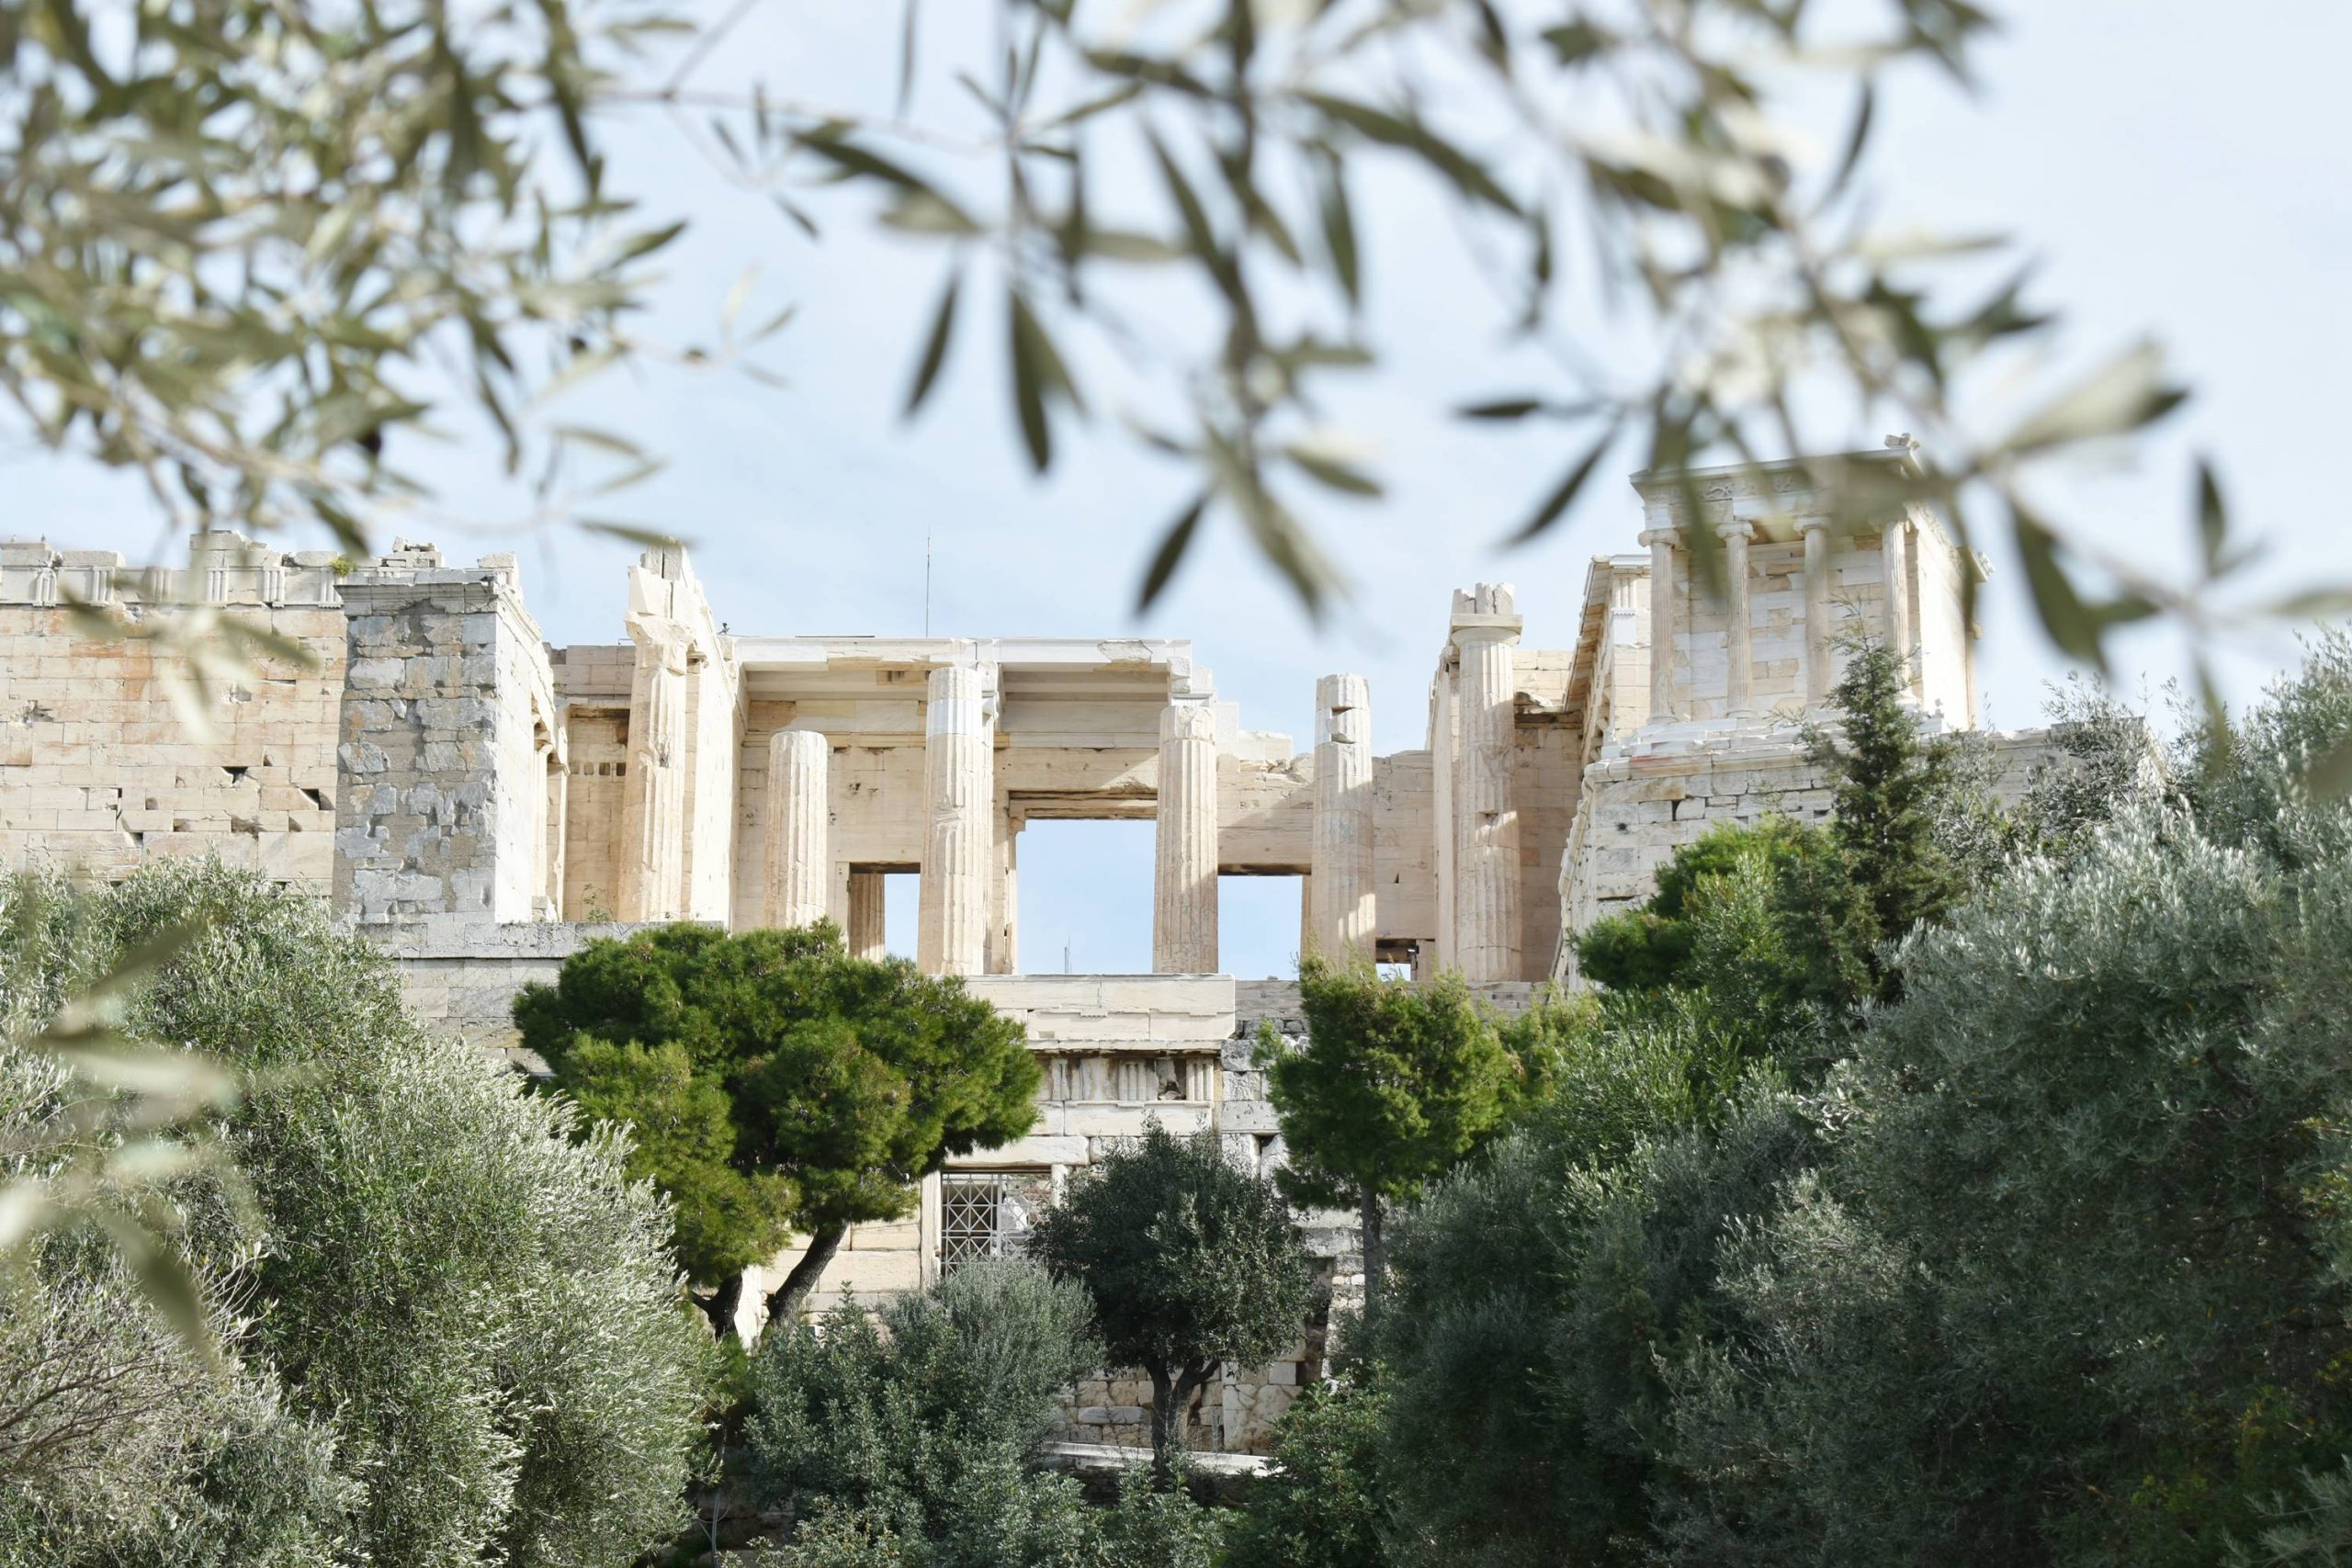 acropolis-of-athens-in-greece